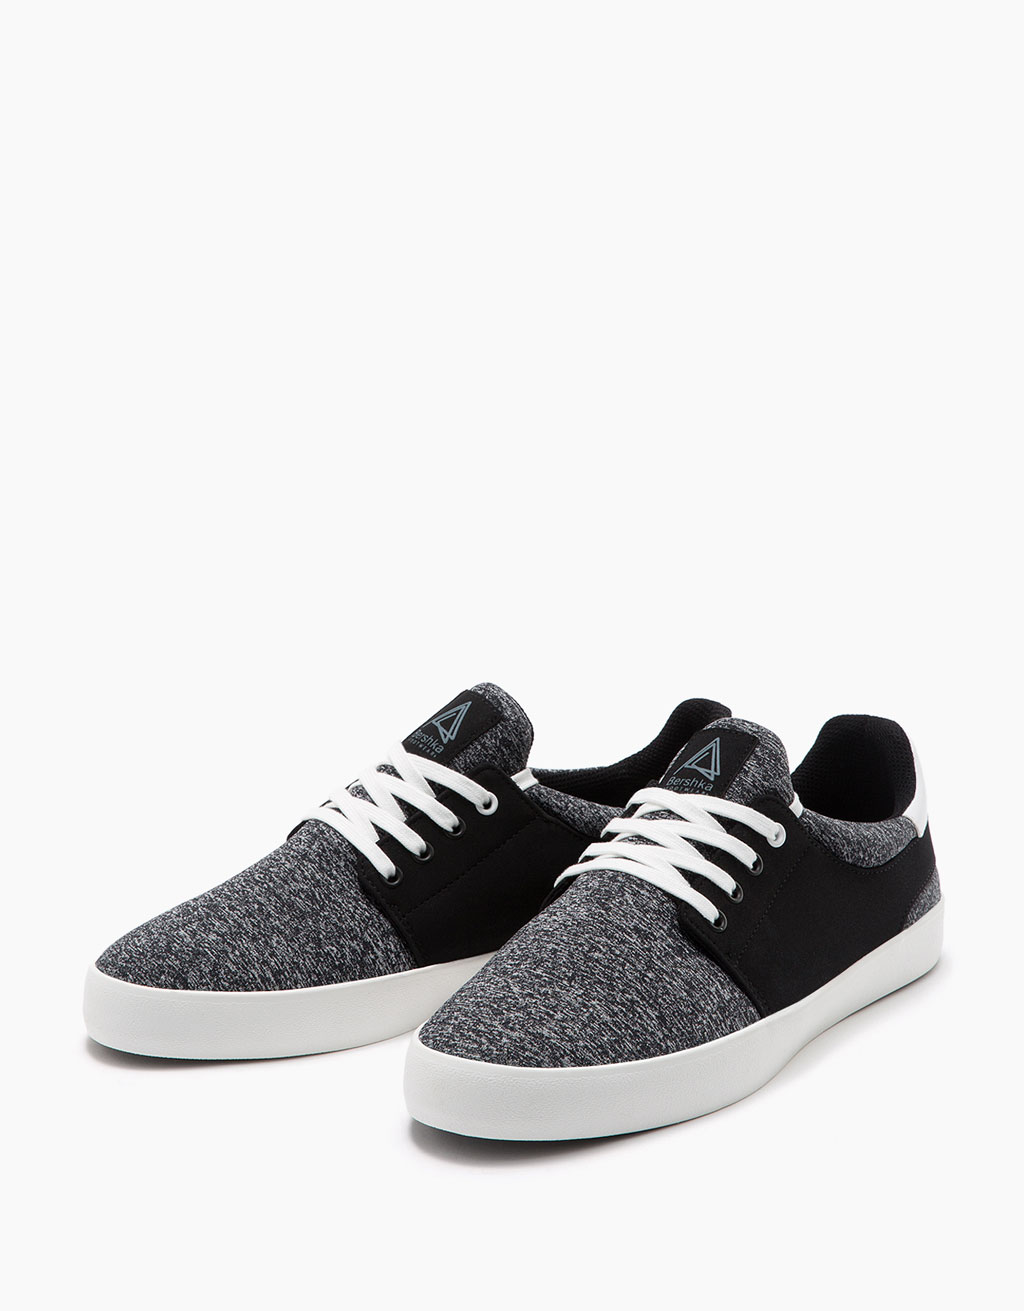 Men's technical combined fabric sports shoes